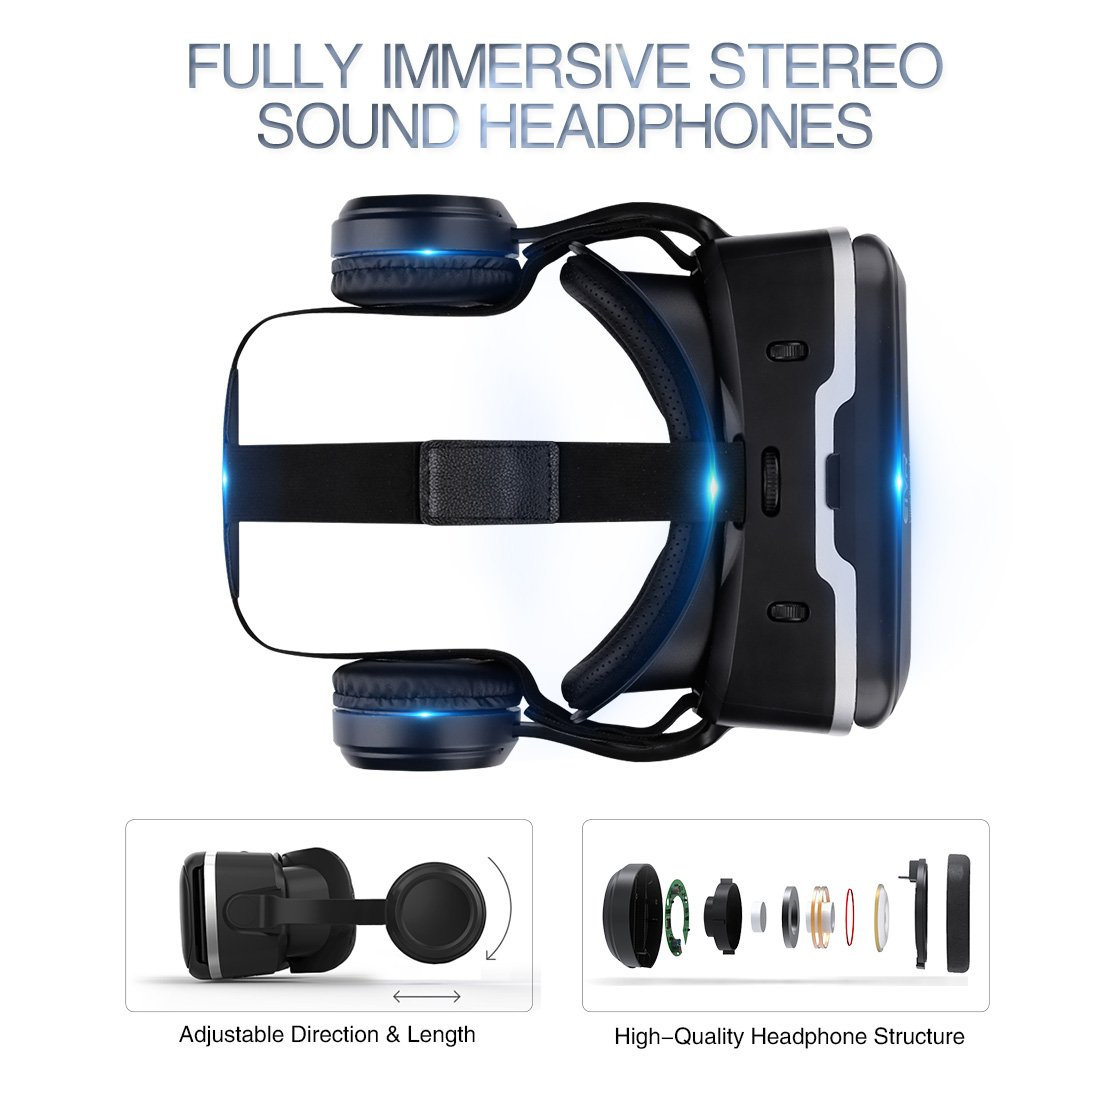 VR Headset with Remote Controller Immersive 3D VR Glasses Virtual Reality Headsetwith Stereo Headphone and Adjustable Headstrap for 3D Movies & VR Games, Fit for 4.7-6.0 inch IOS/Android Smartphone by EXCLEAD (Image #3)